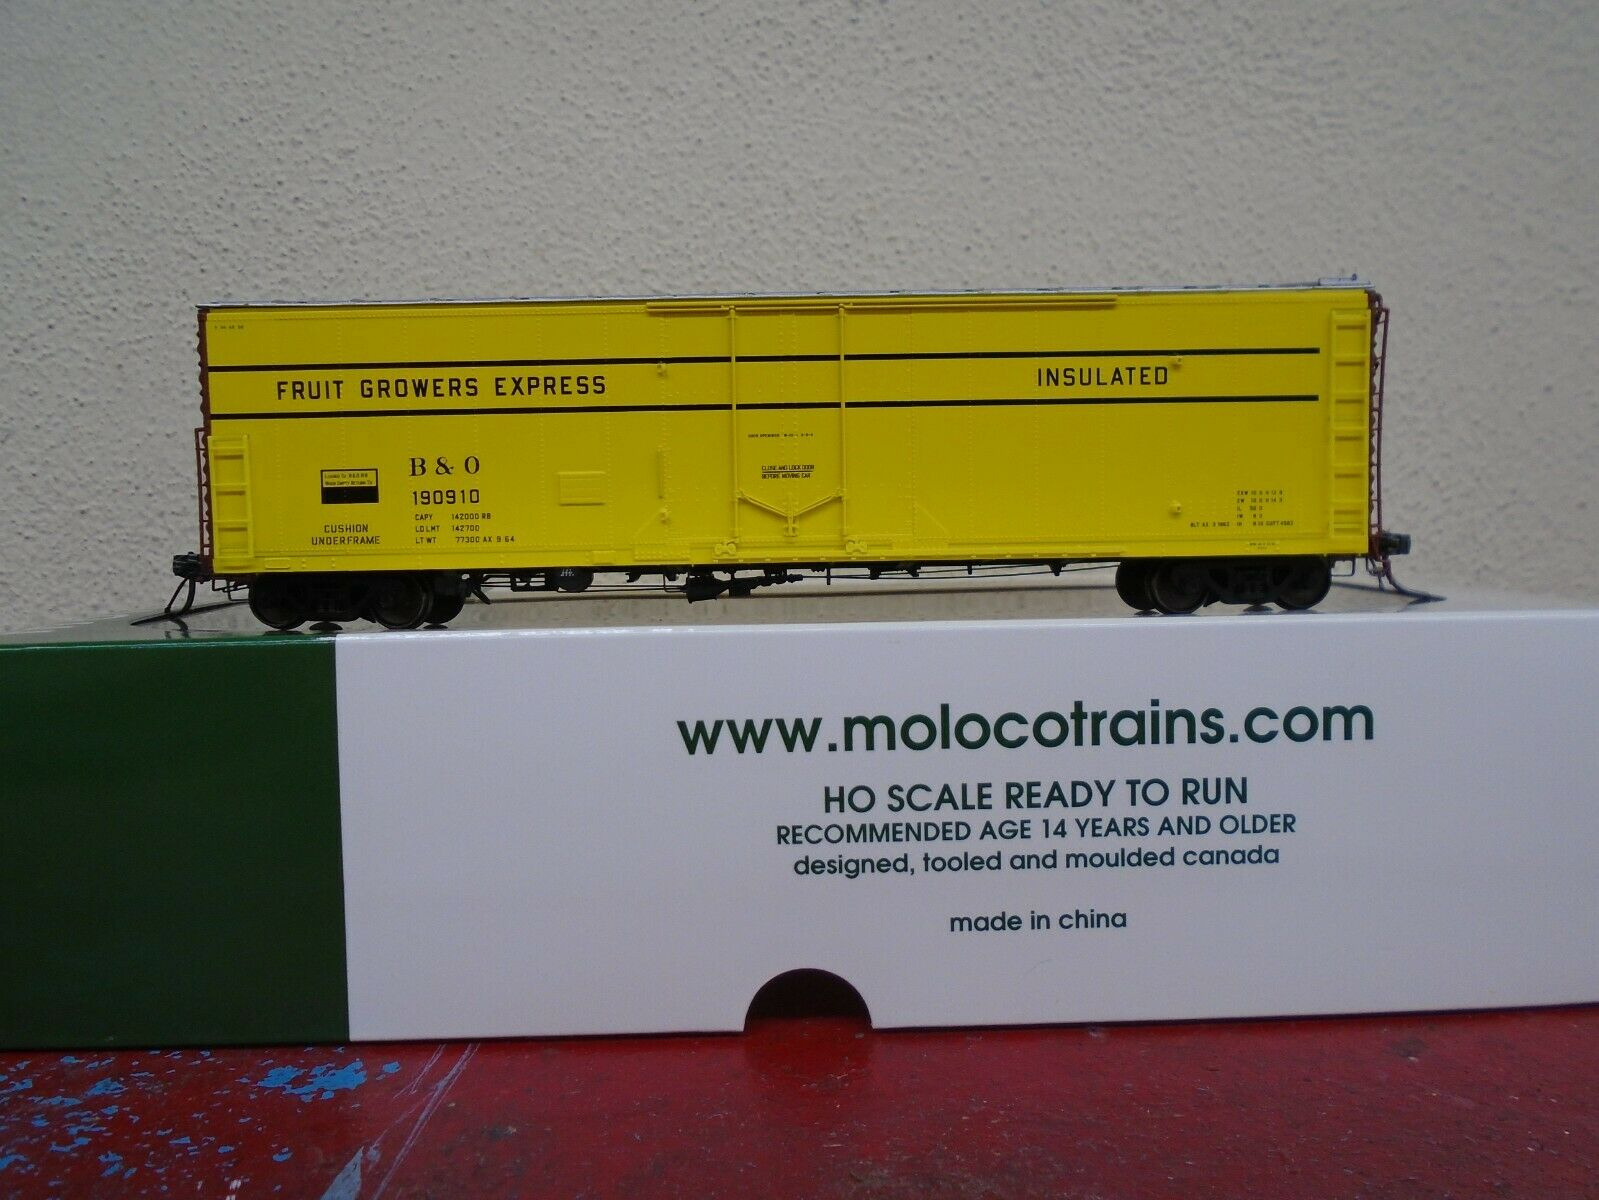 Moloco Trains B&O FGE 50' RBL Boxcar 33004 HO Fruit Growers Express